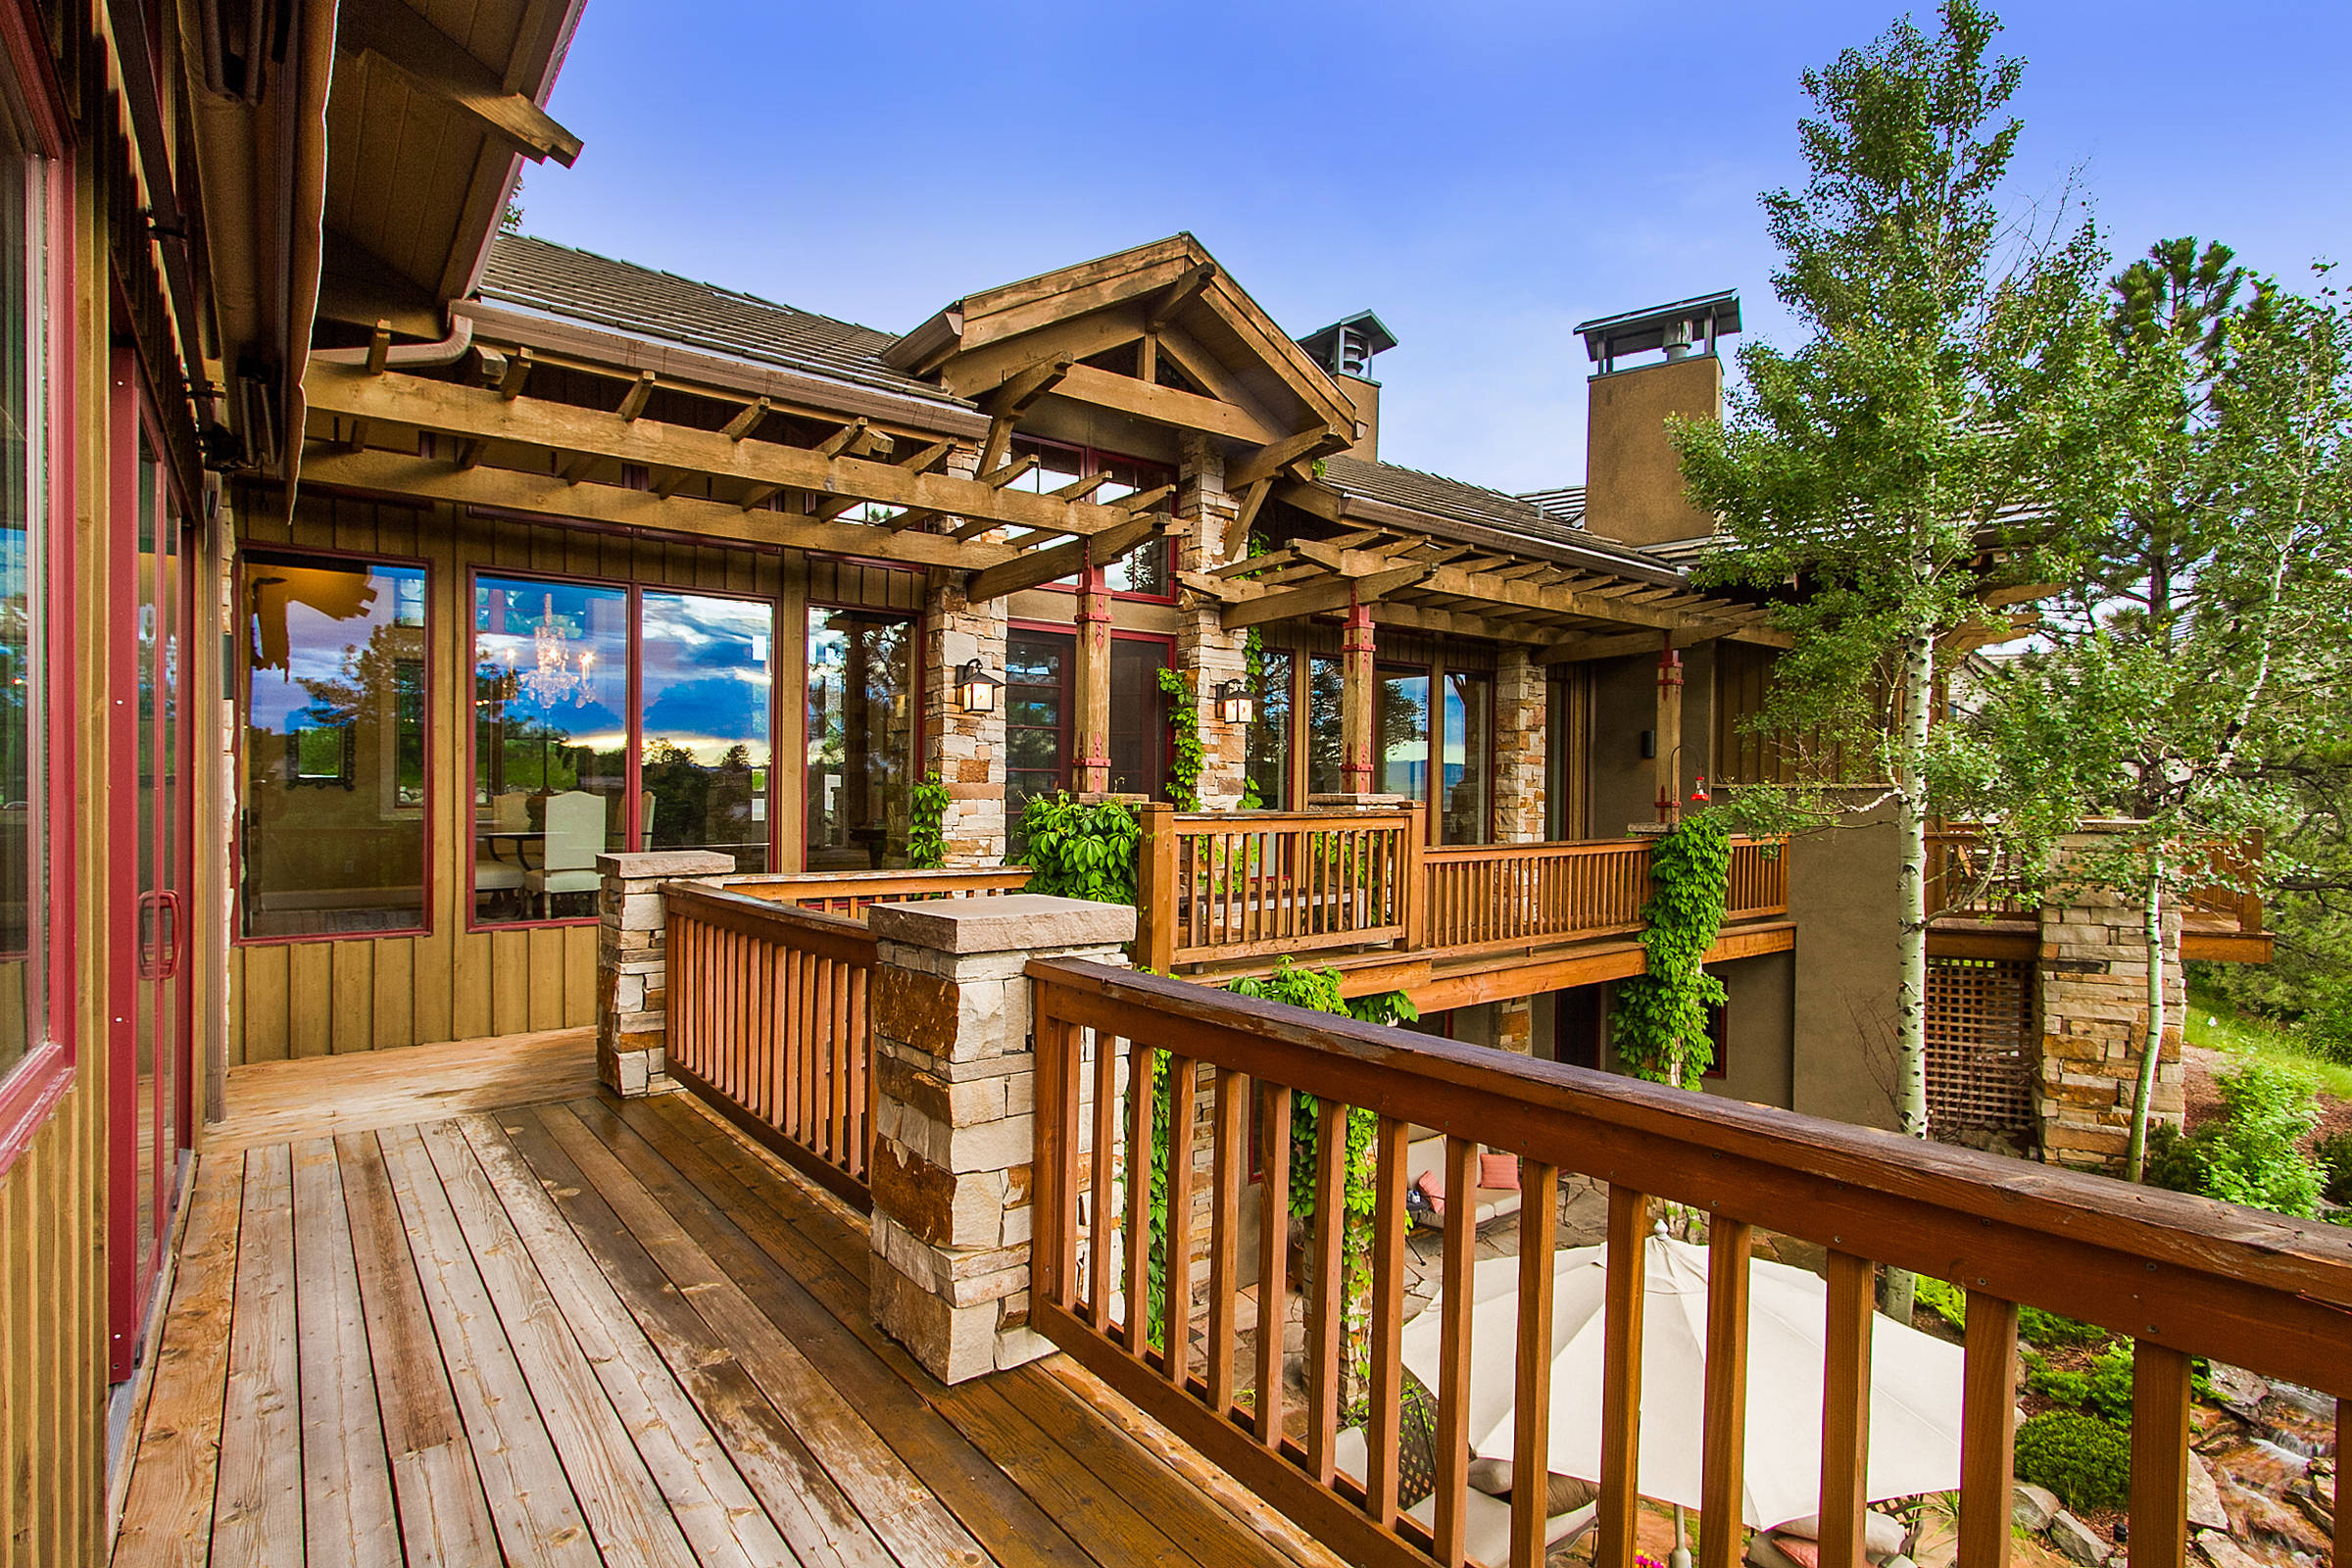 15 Amazing Rustic Deck Designs That Will Enhance Your ... on Garden Patio Decking Ideas id=19560